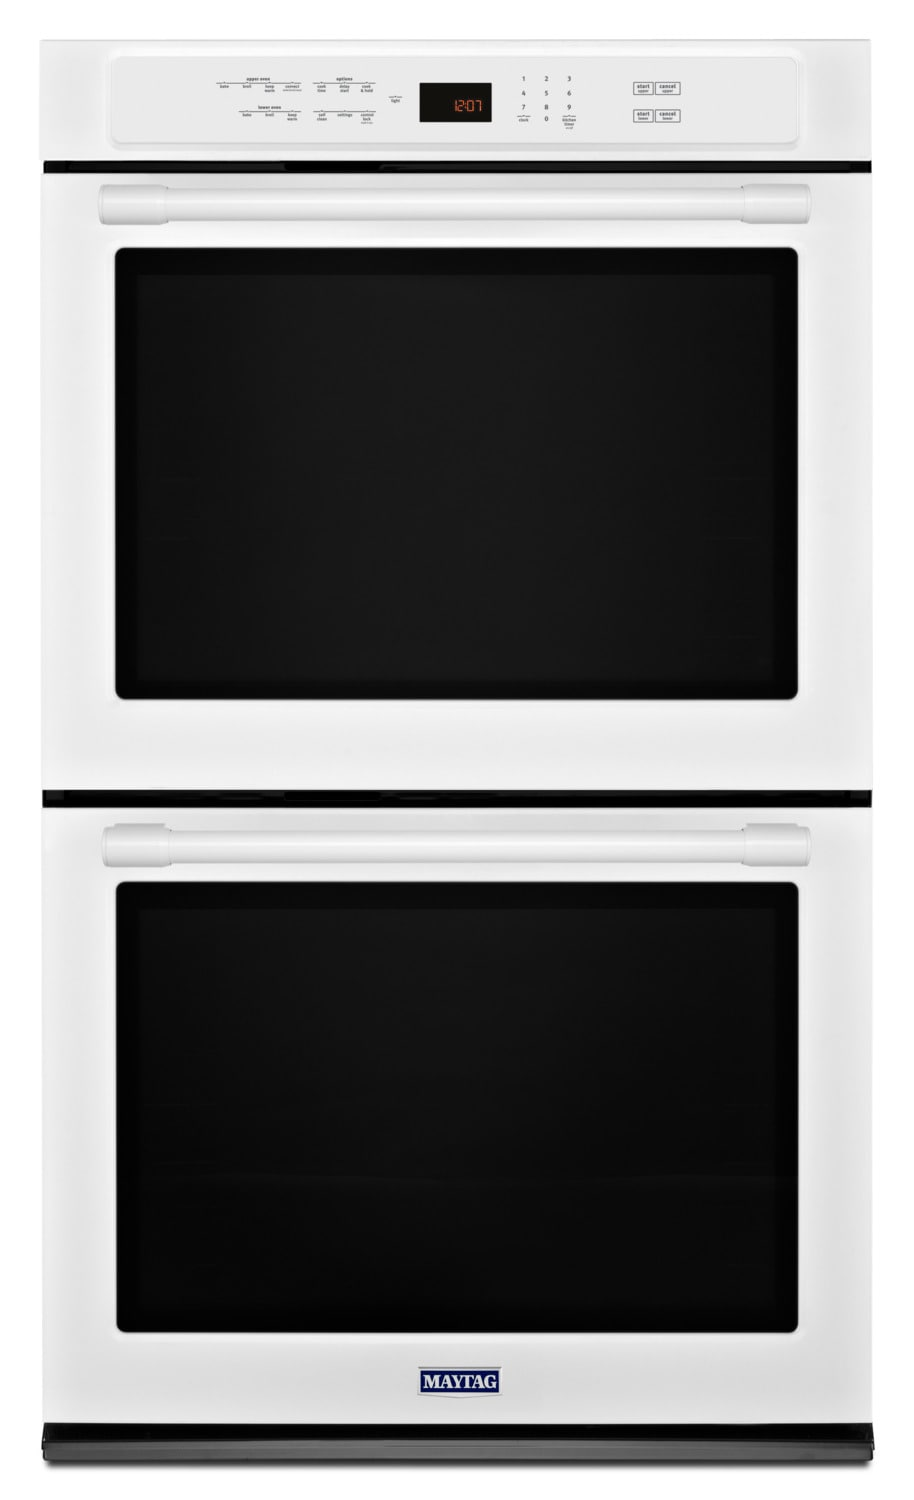 Maytag 10.0 Cu. Ft. Double Wall Oven – MEW9630FW